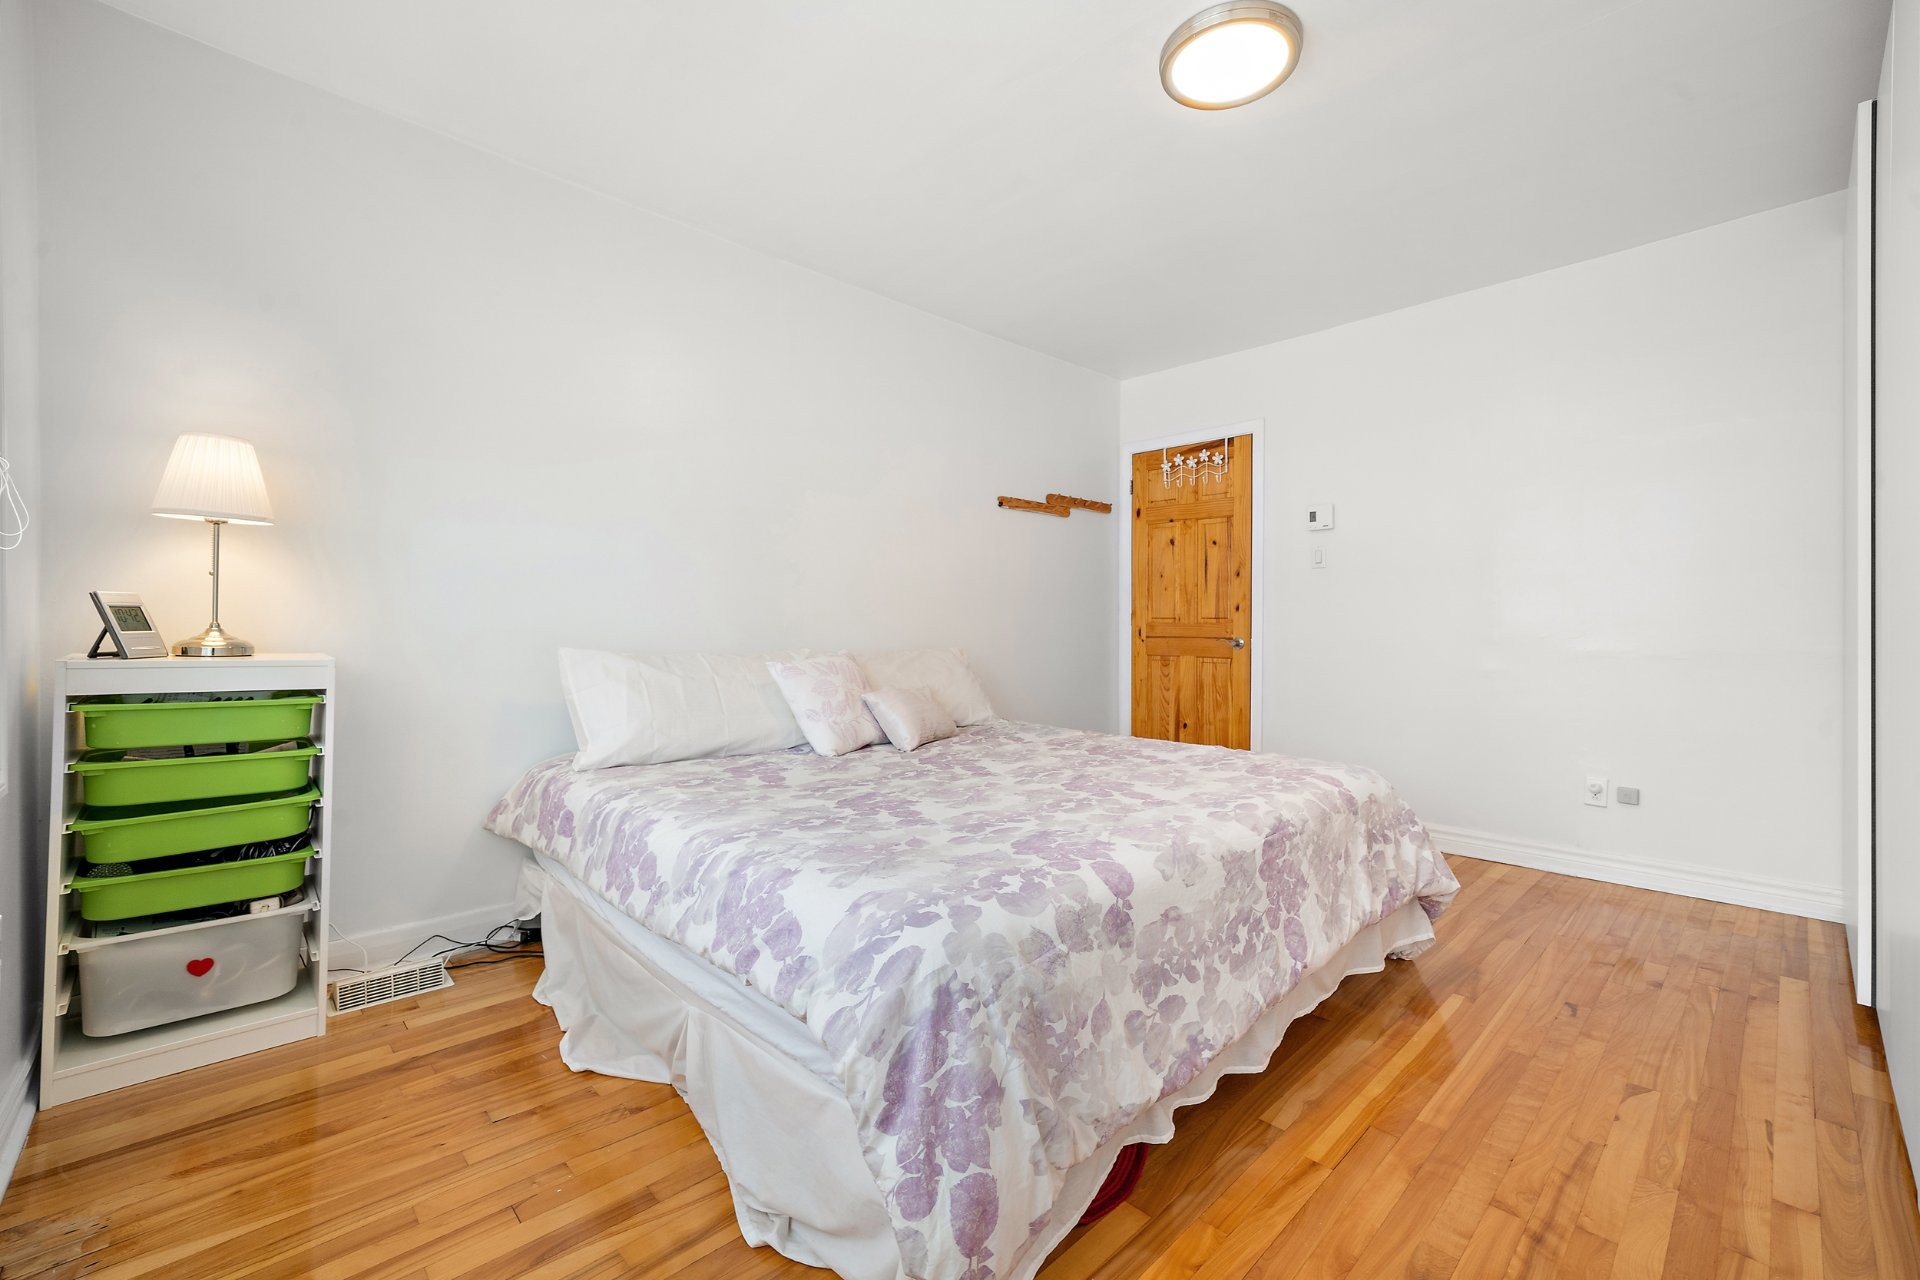 image 10 - Duplex For sale Montréal-Ouest - 5 rooms